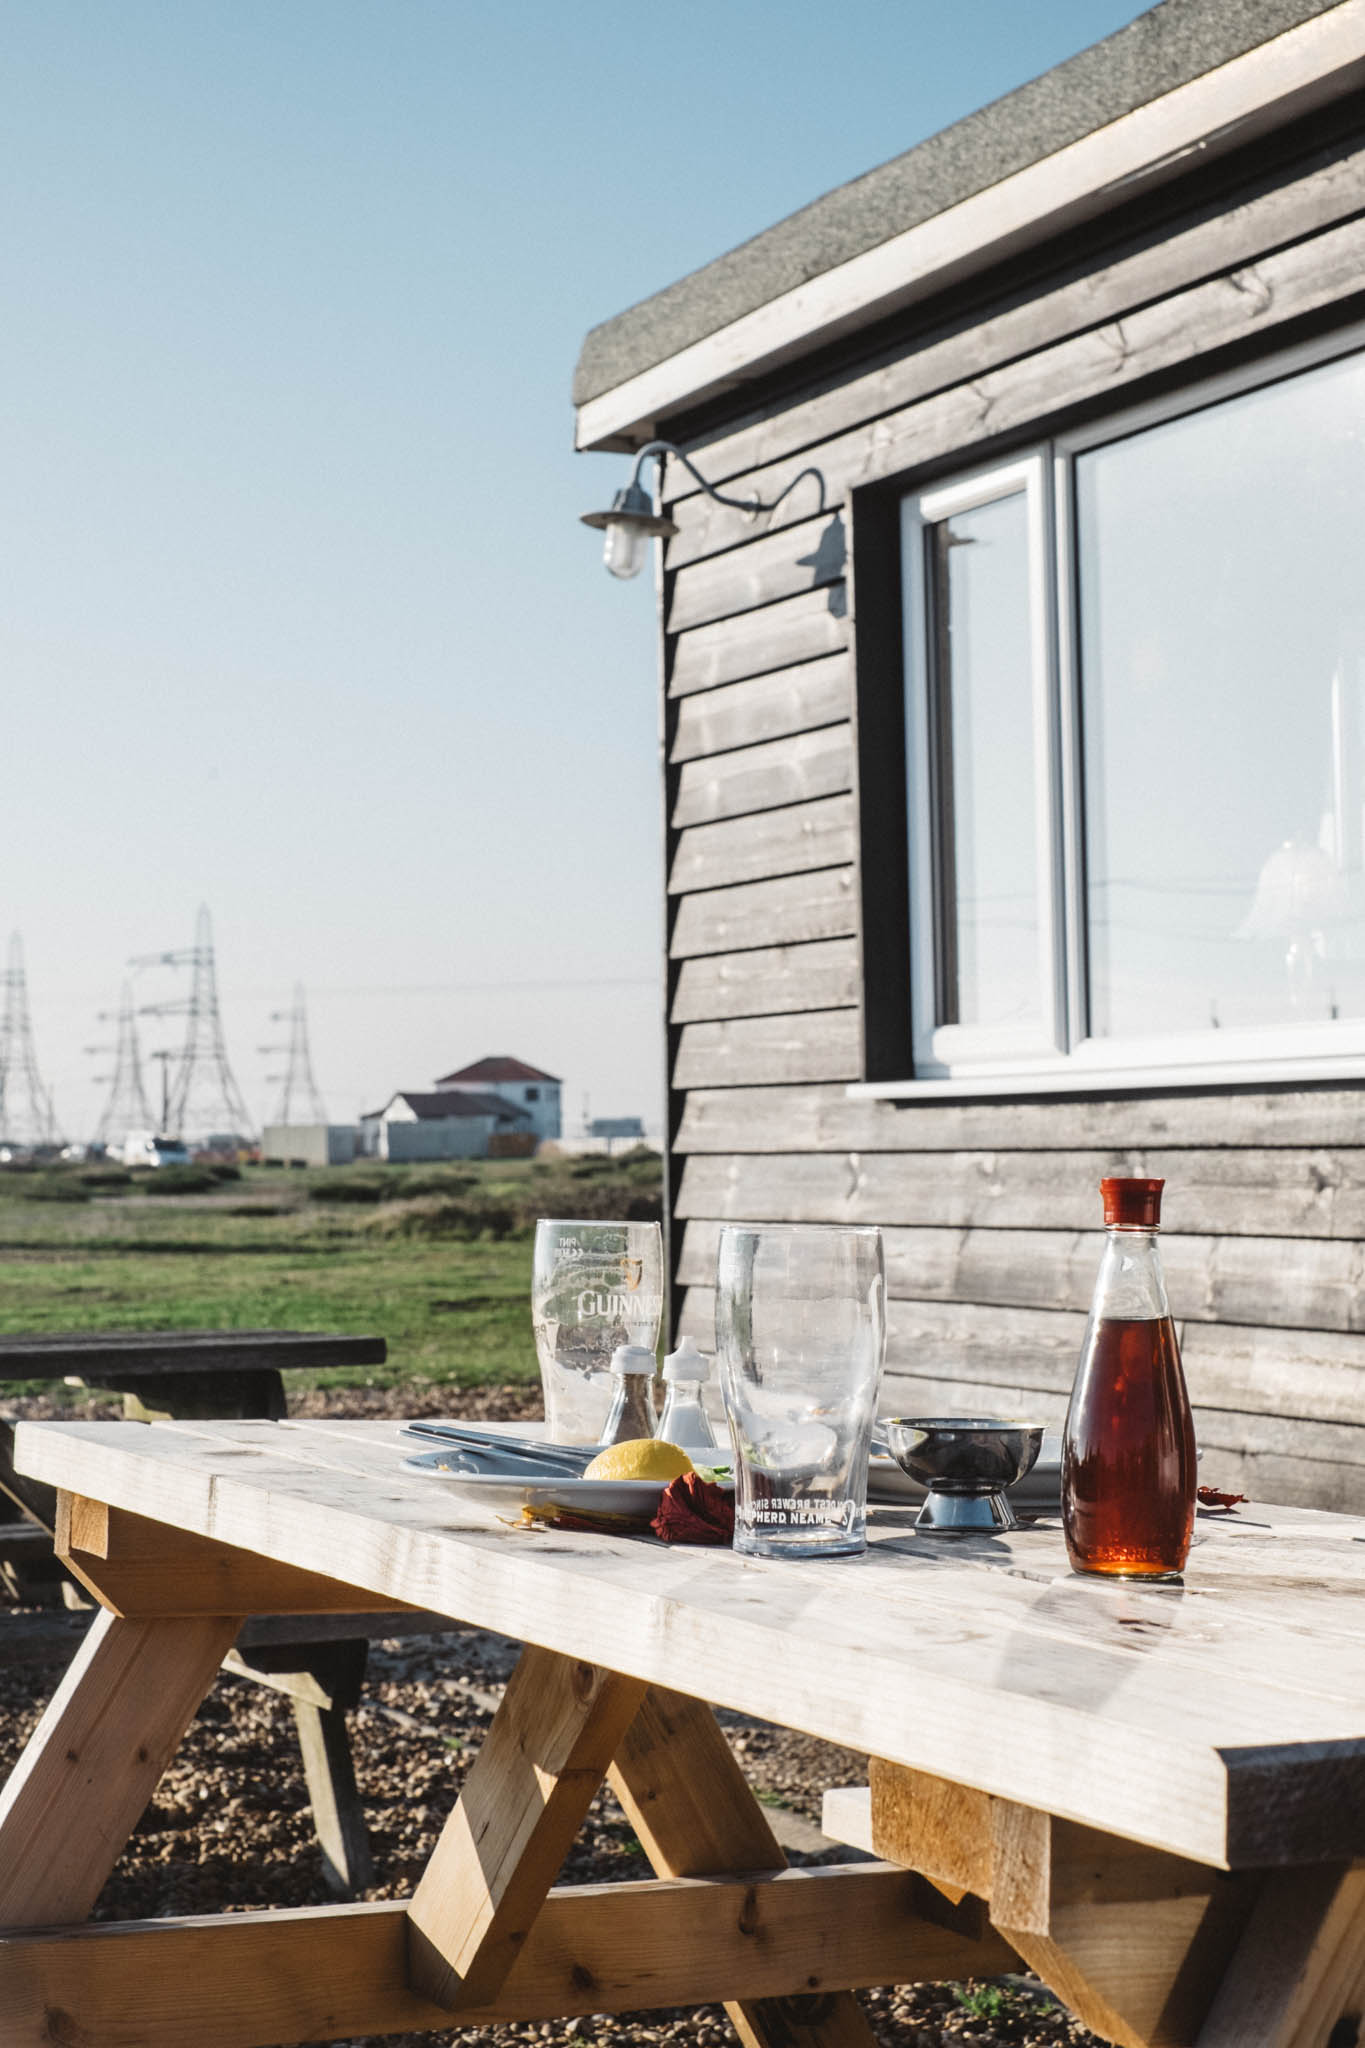 Camber and Dungeness are located on the east coast of England in Kent, a short drive from Sussex. Photography by Sussex photographer Emma Gutteridge